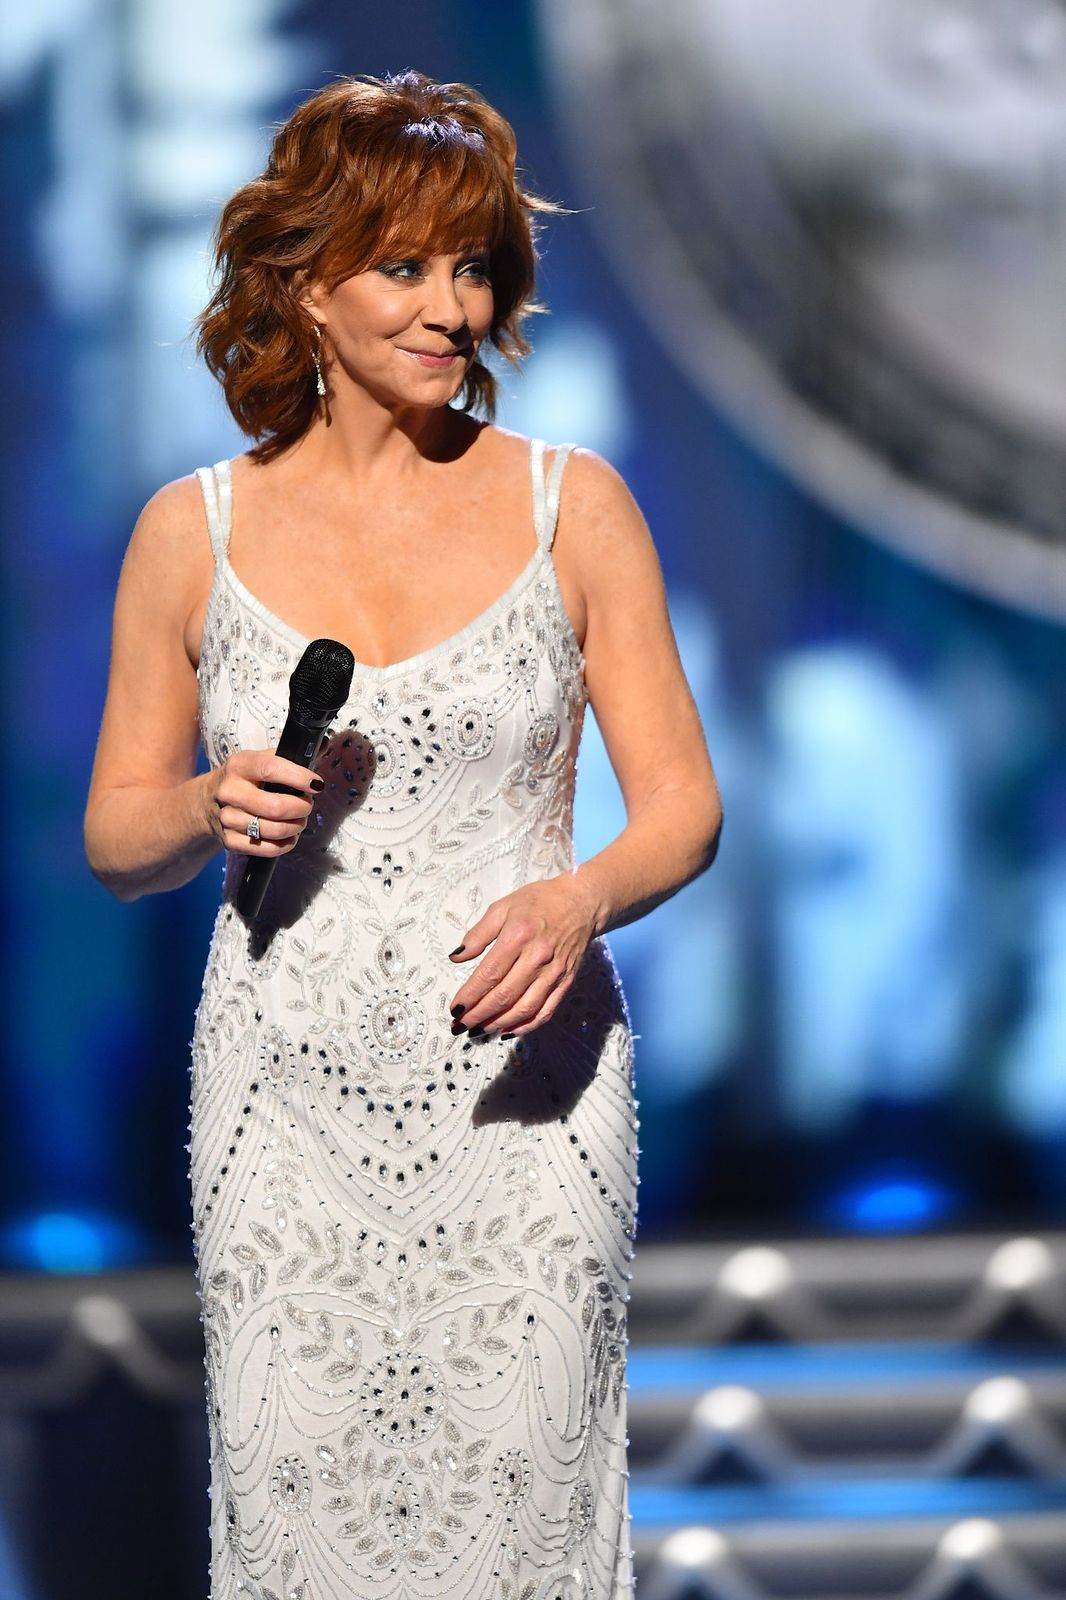 Reba McEntire performs onstage during the CMA Country Christmas on November 14, 2017, in Nashville, Tennessee   Photo: Jason Davis/WireImage/Getty Images